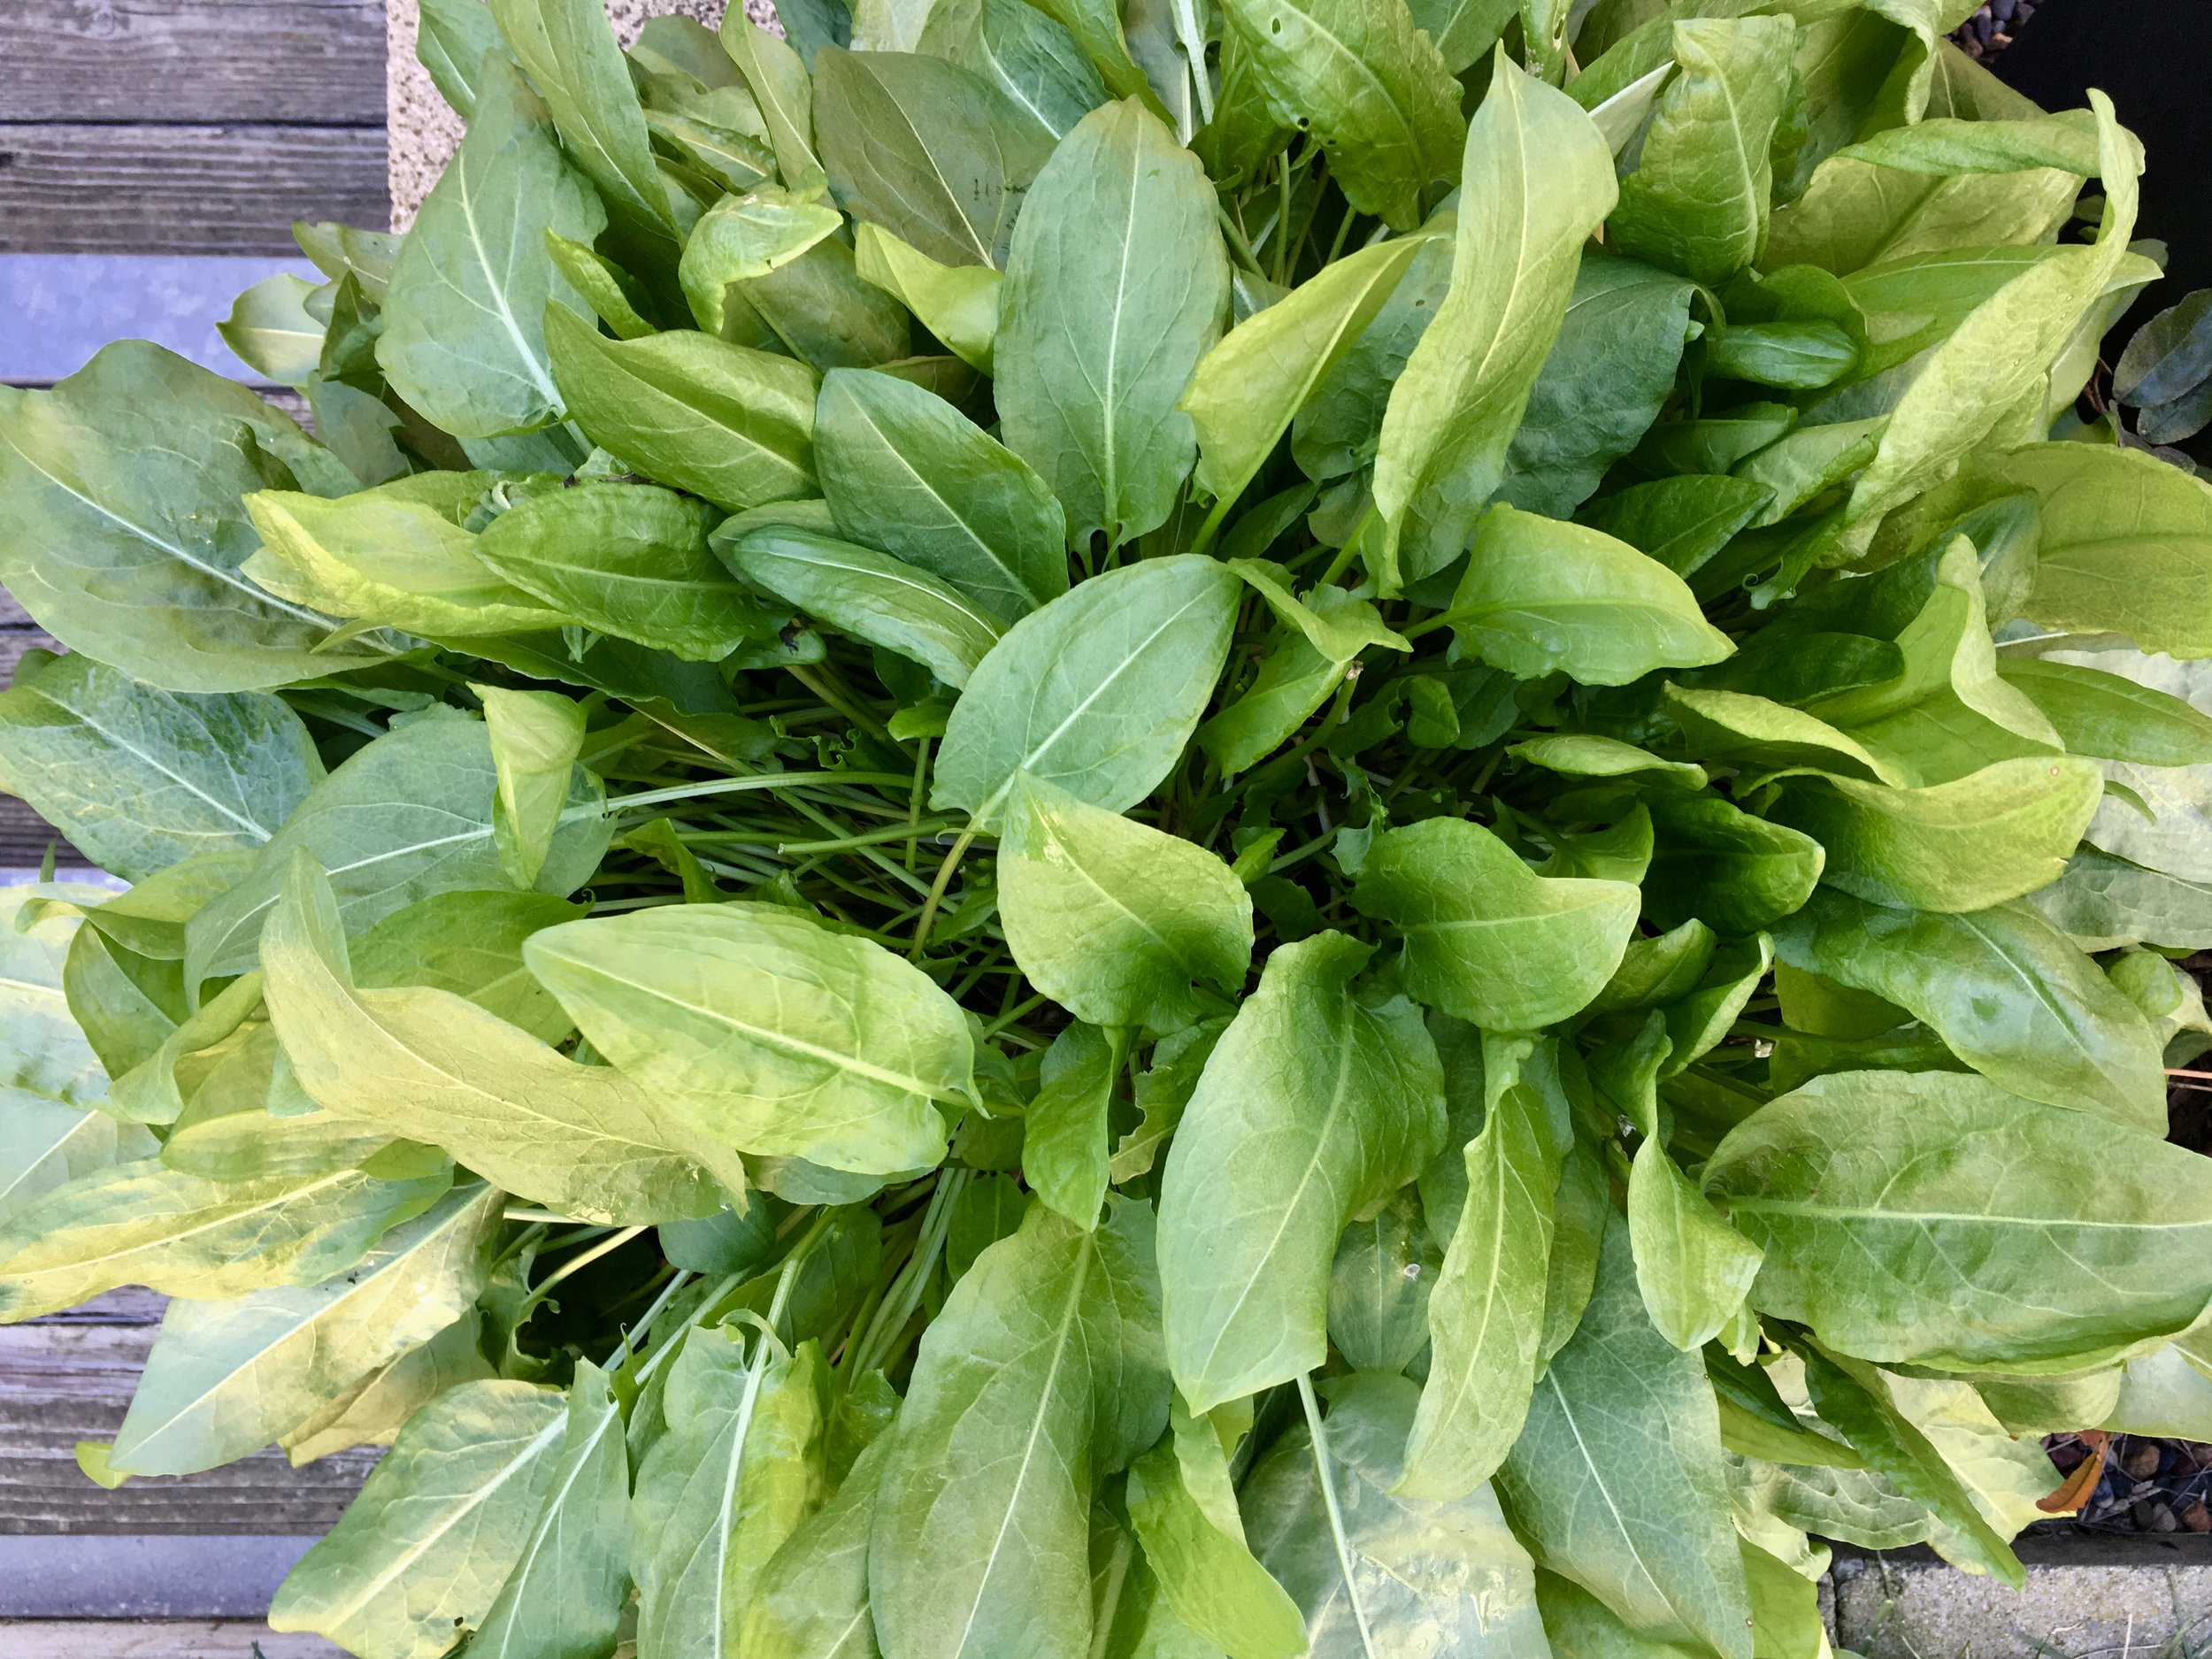 The French sorrel benefitted from a soaking rain and responded with a flush of new leaves. It remains quite happy and contained in a 12-inch terra cotta pot.